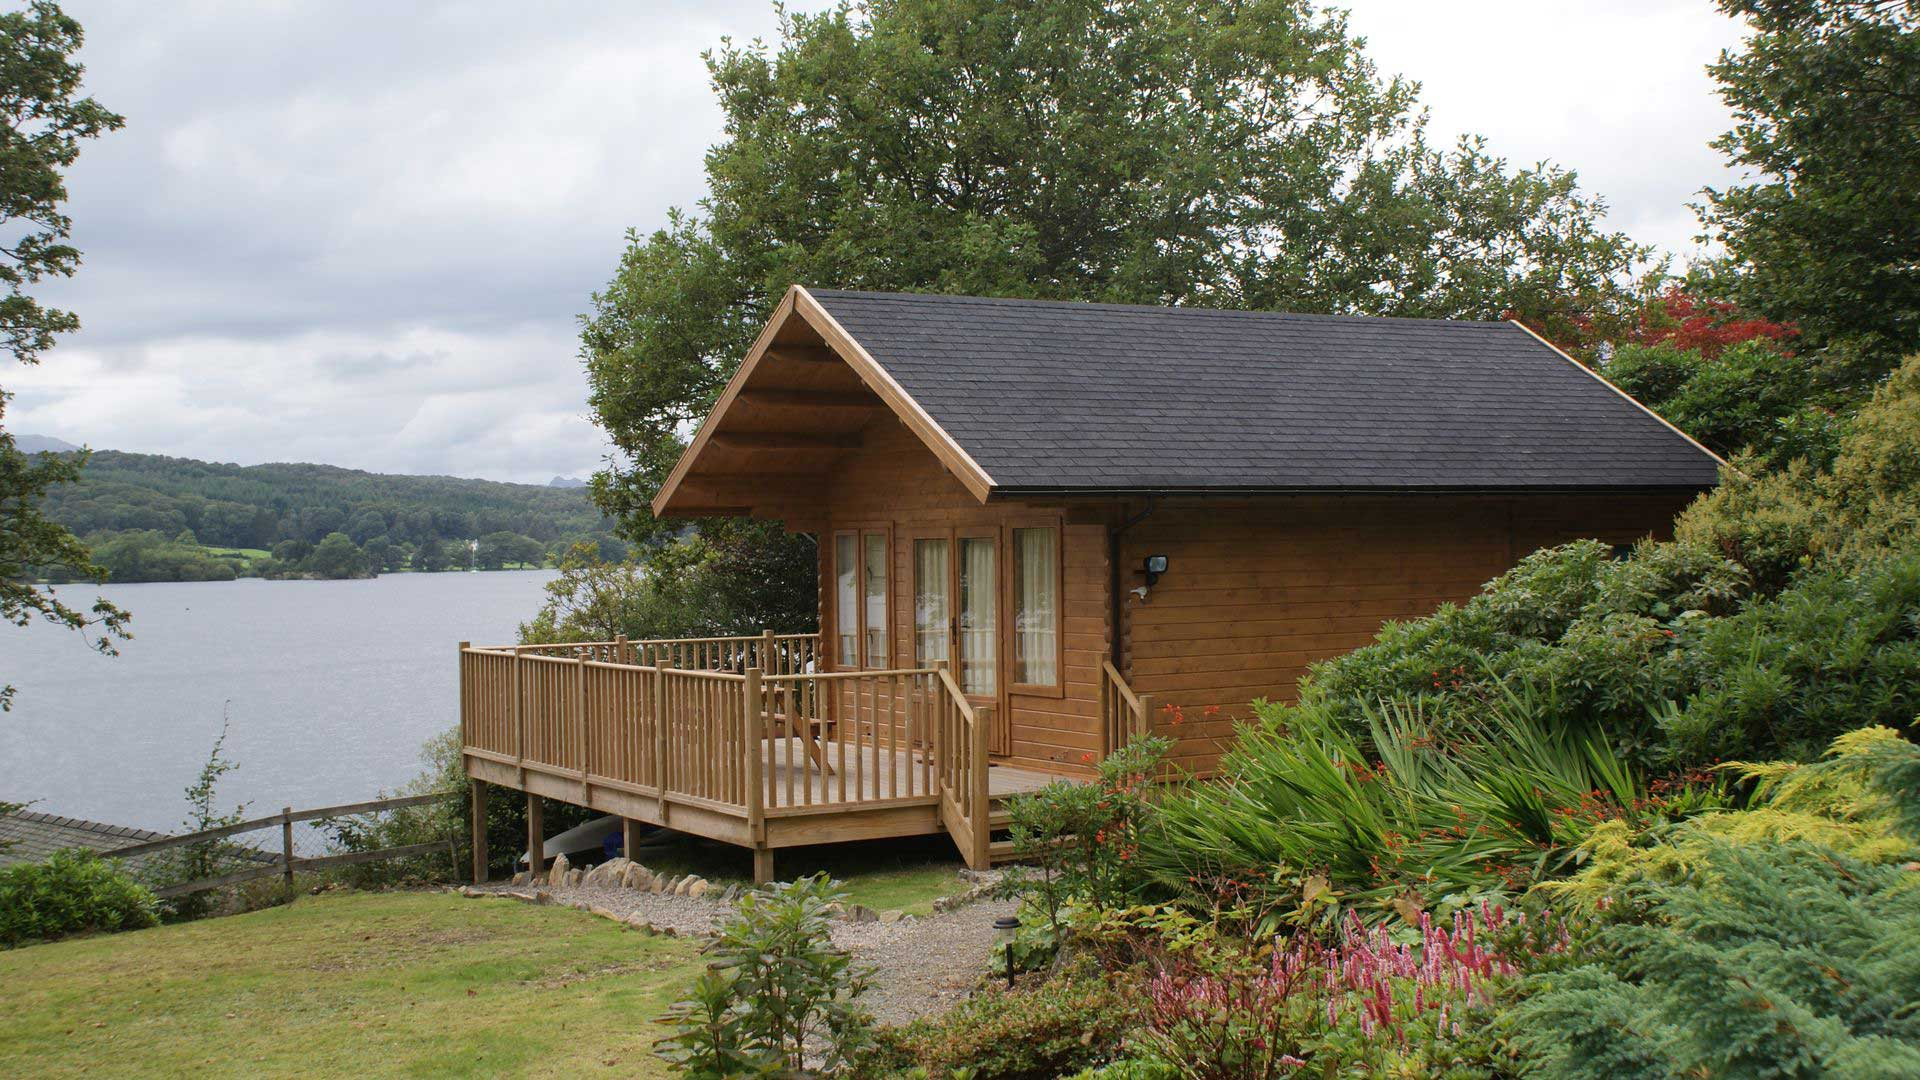 Keops Interlock log cabins - Forest Lodge